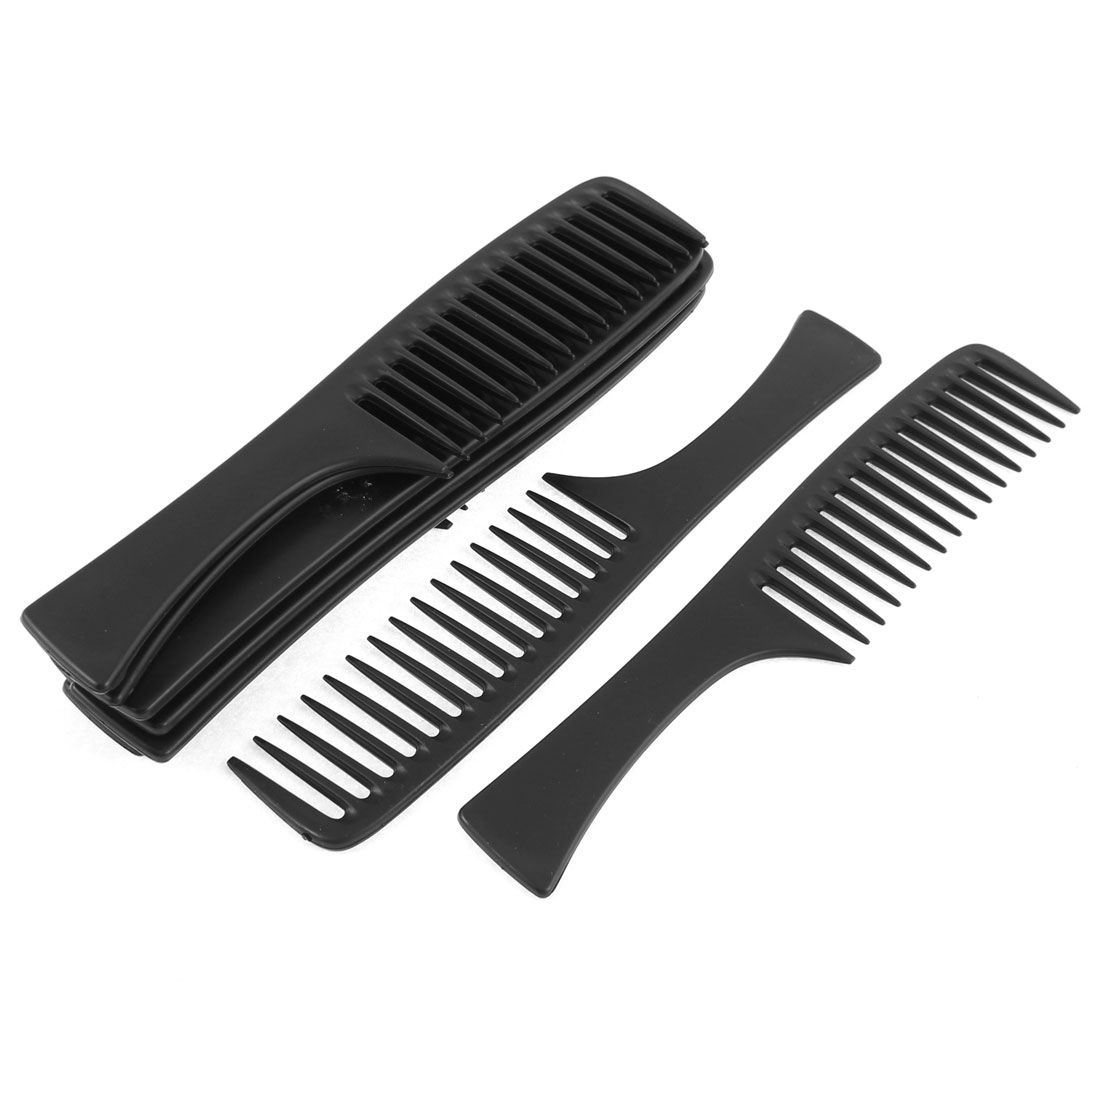 Plastic Antic Static Wide Tooth Hair Care Handgrip Combs Black 10Pcs